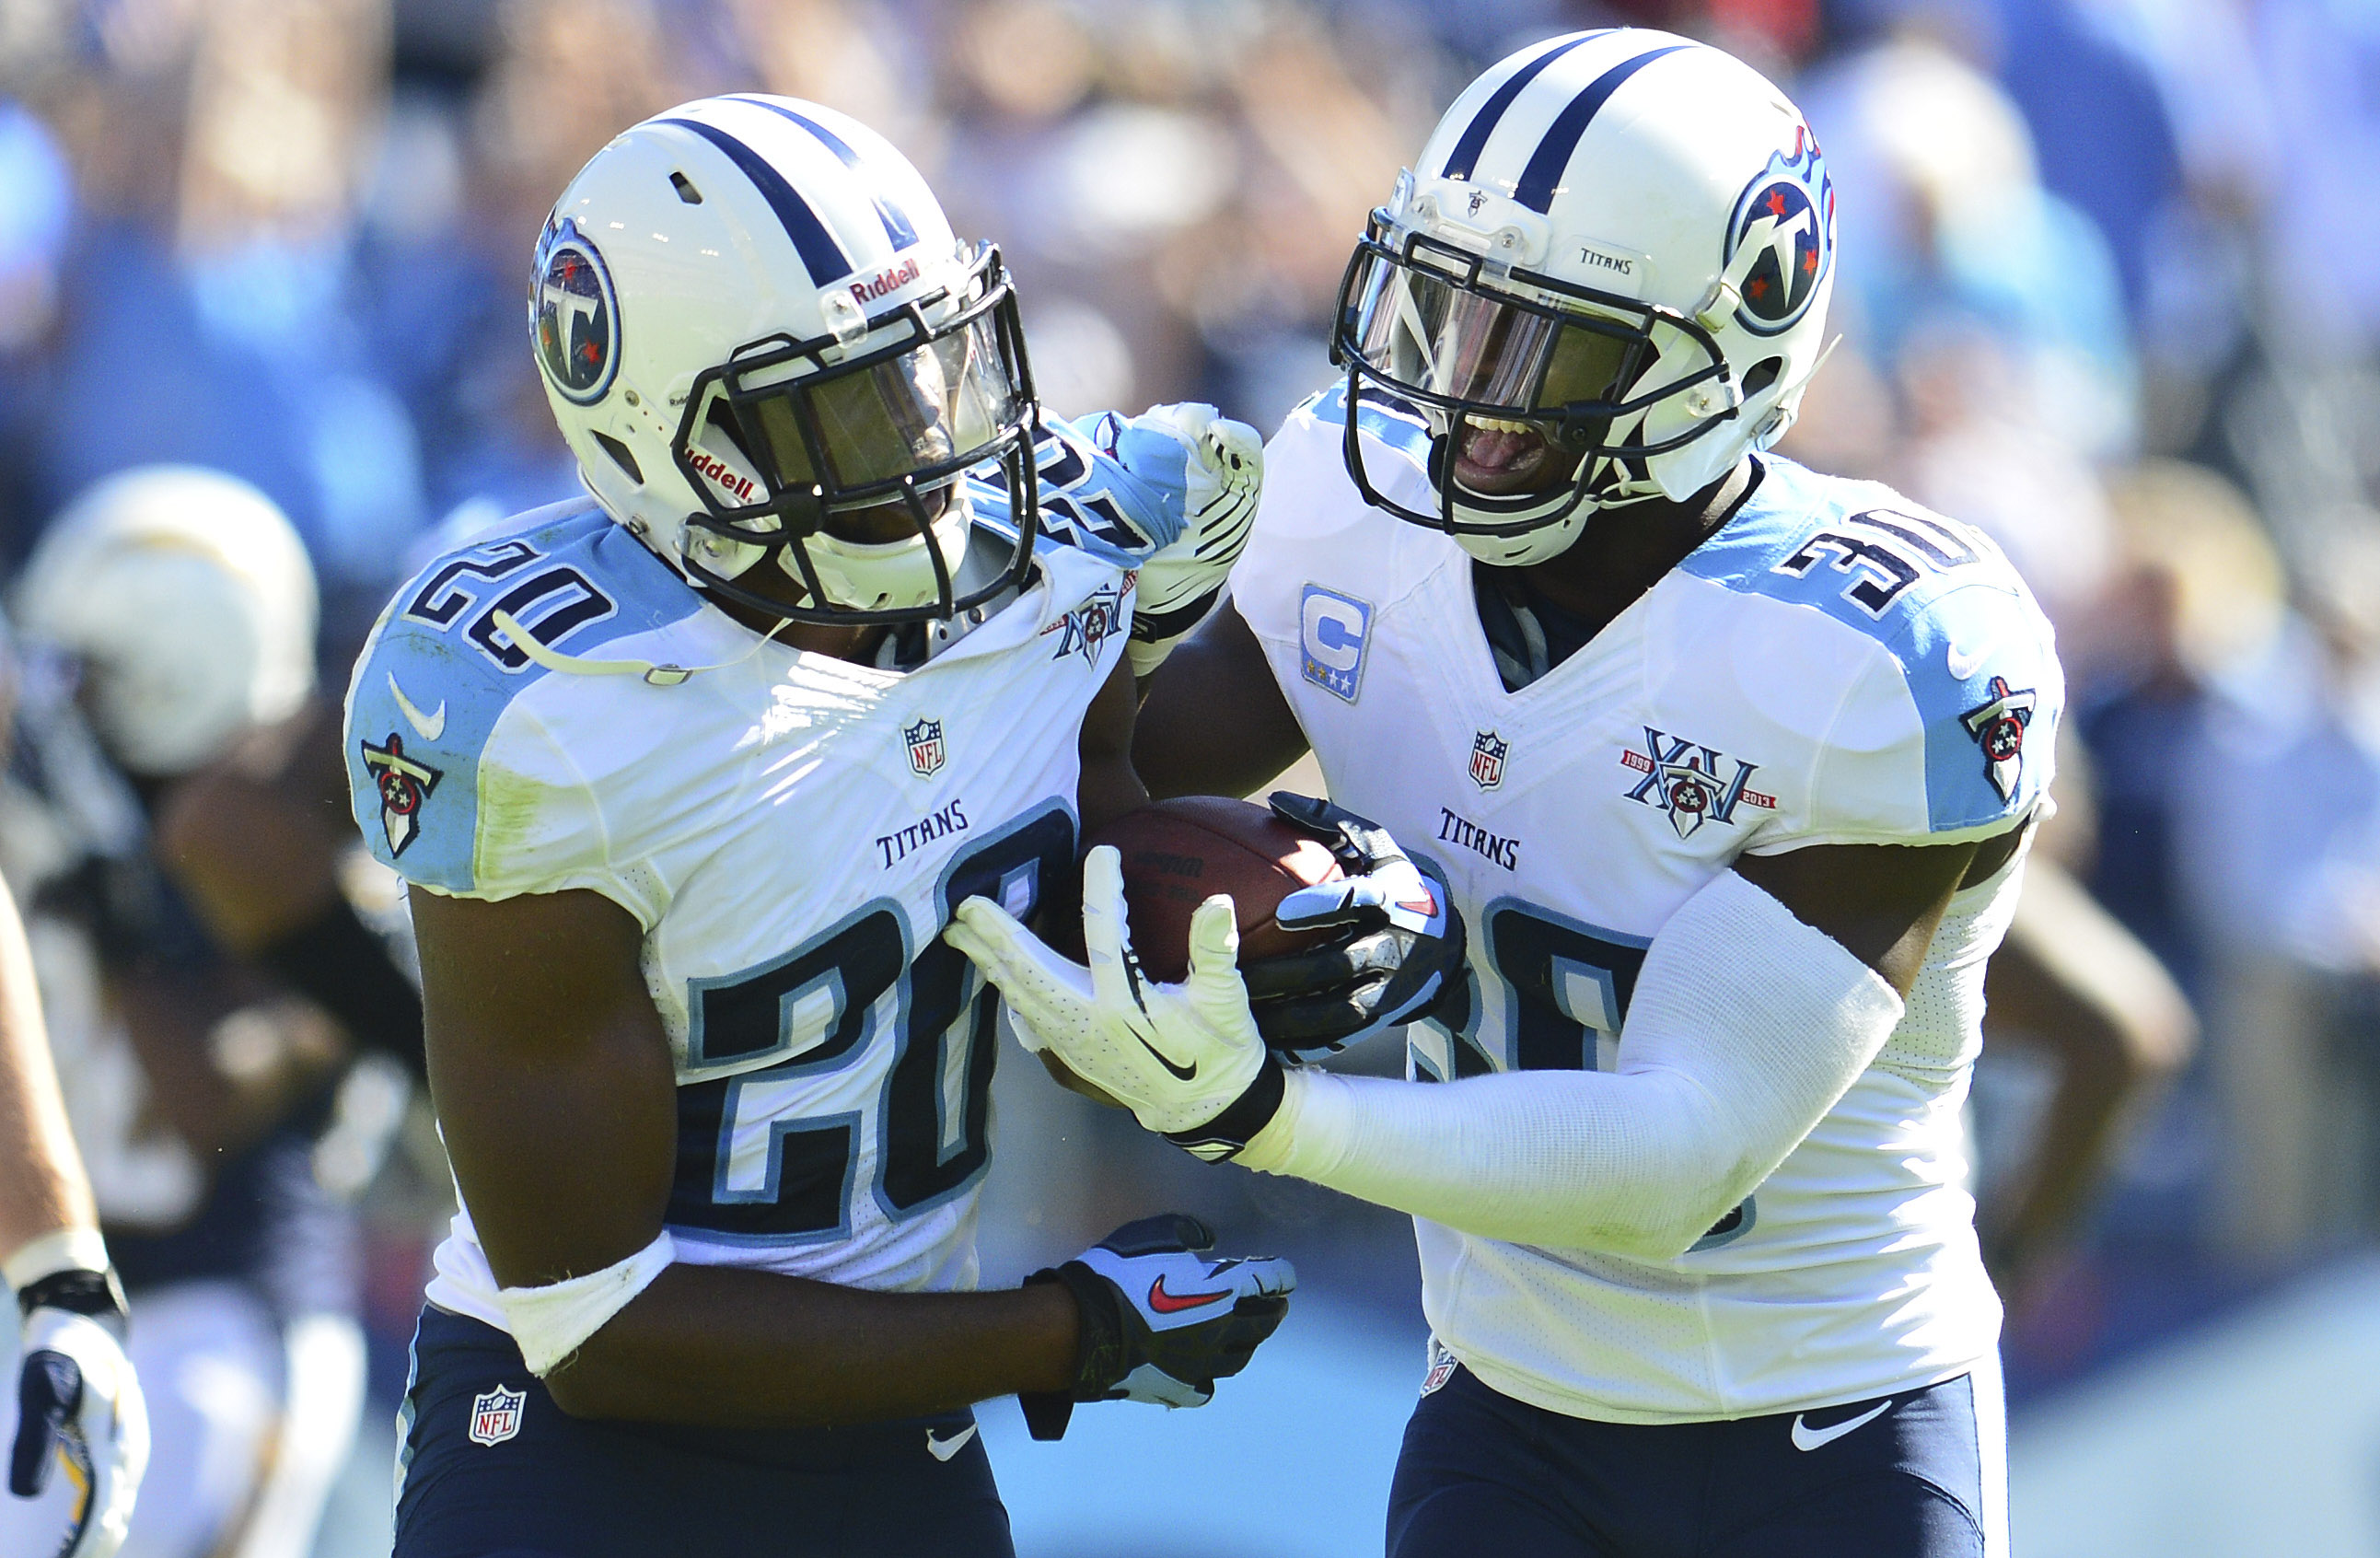 7450366-nfl-san-diego-chargers-at-tennessee-titans